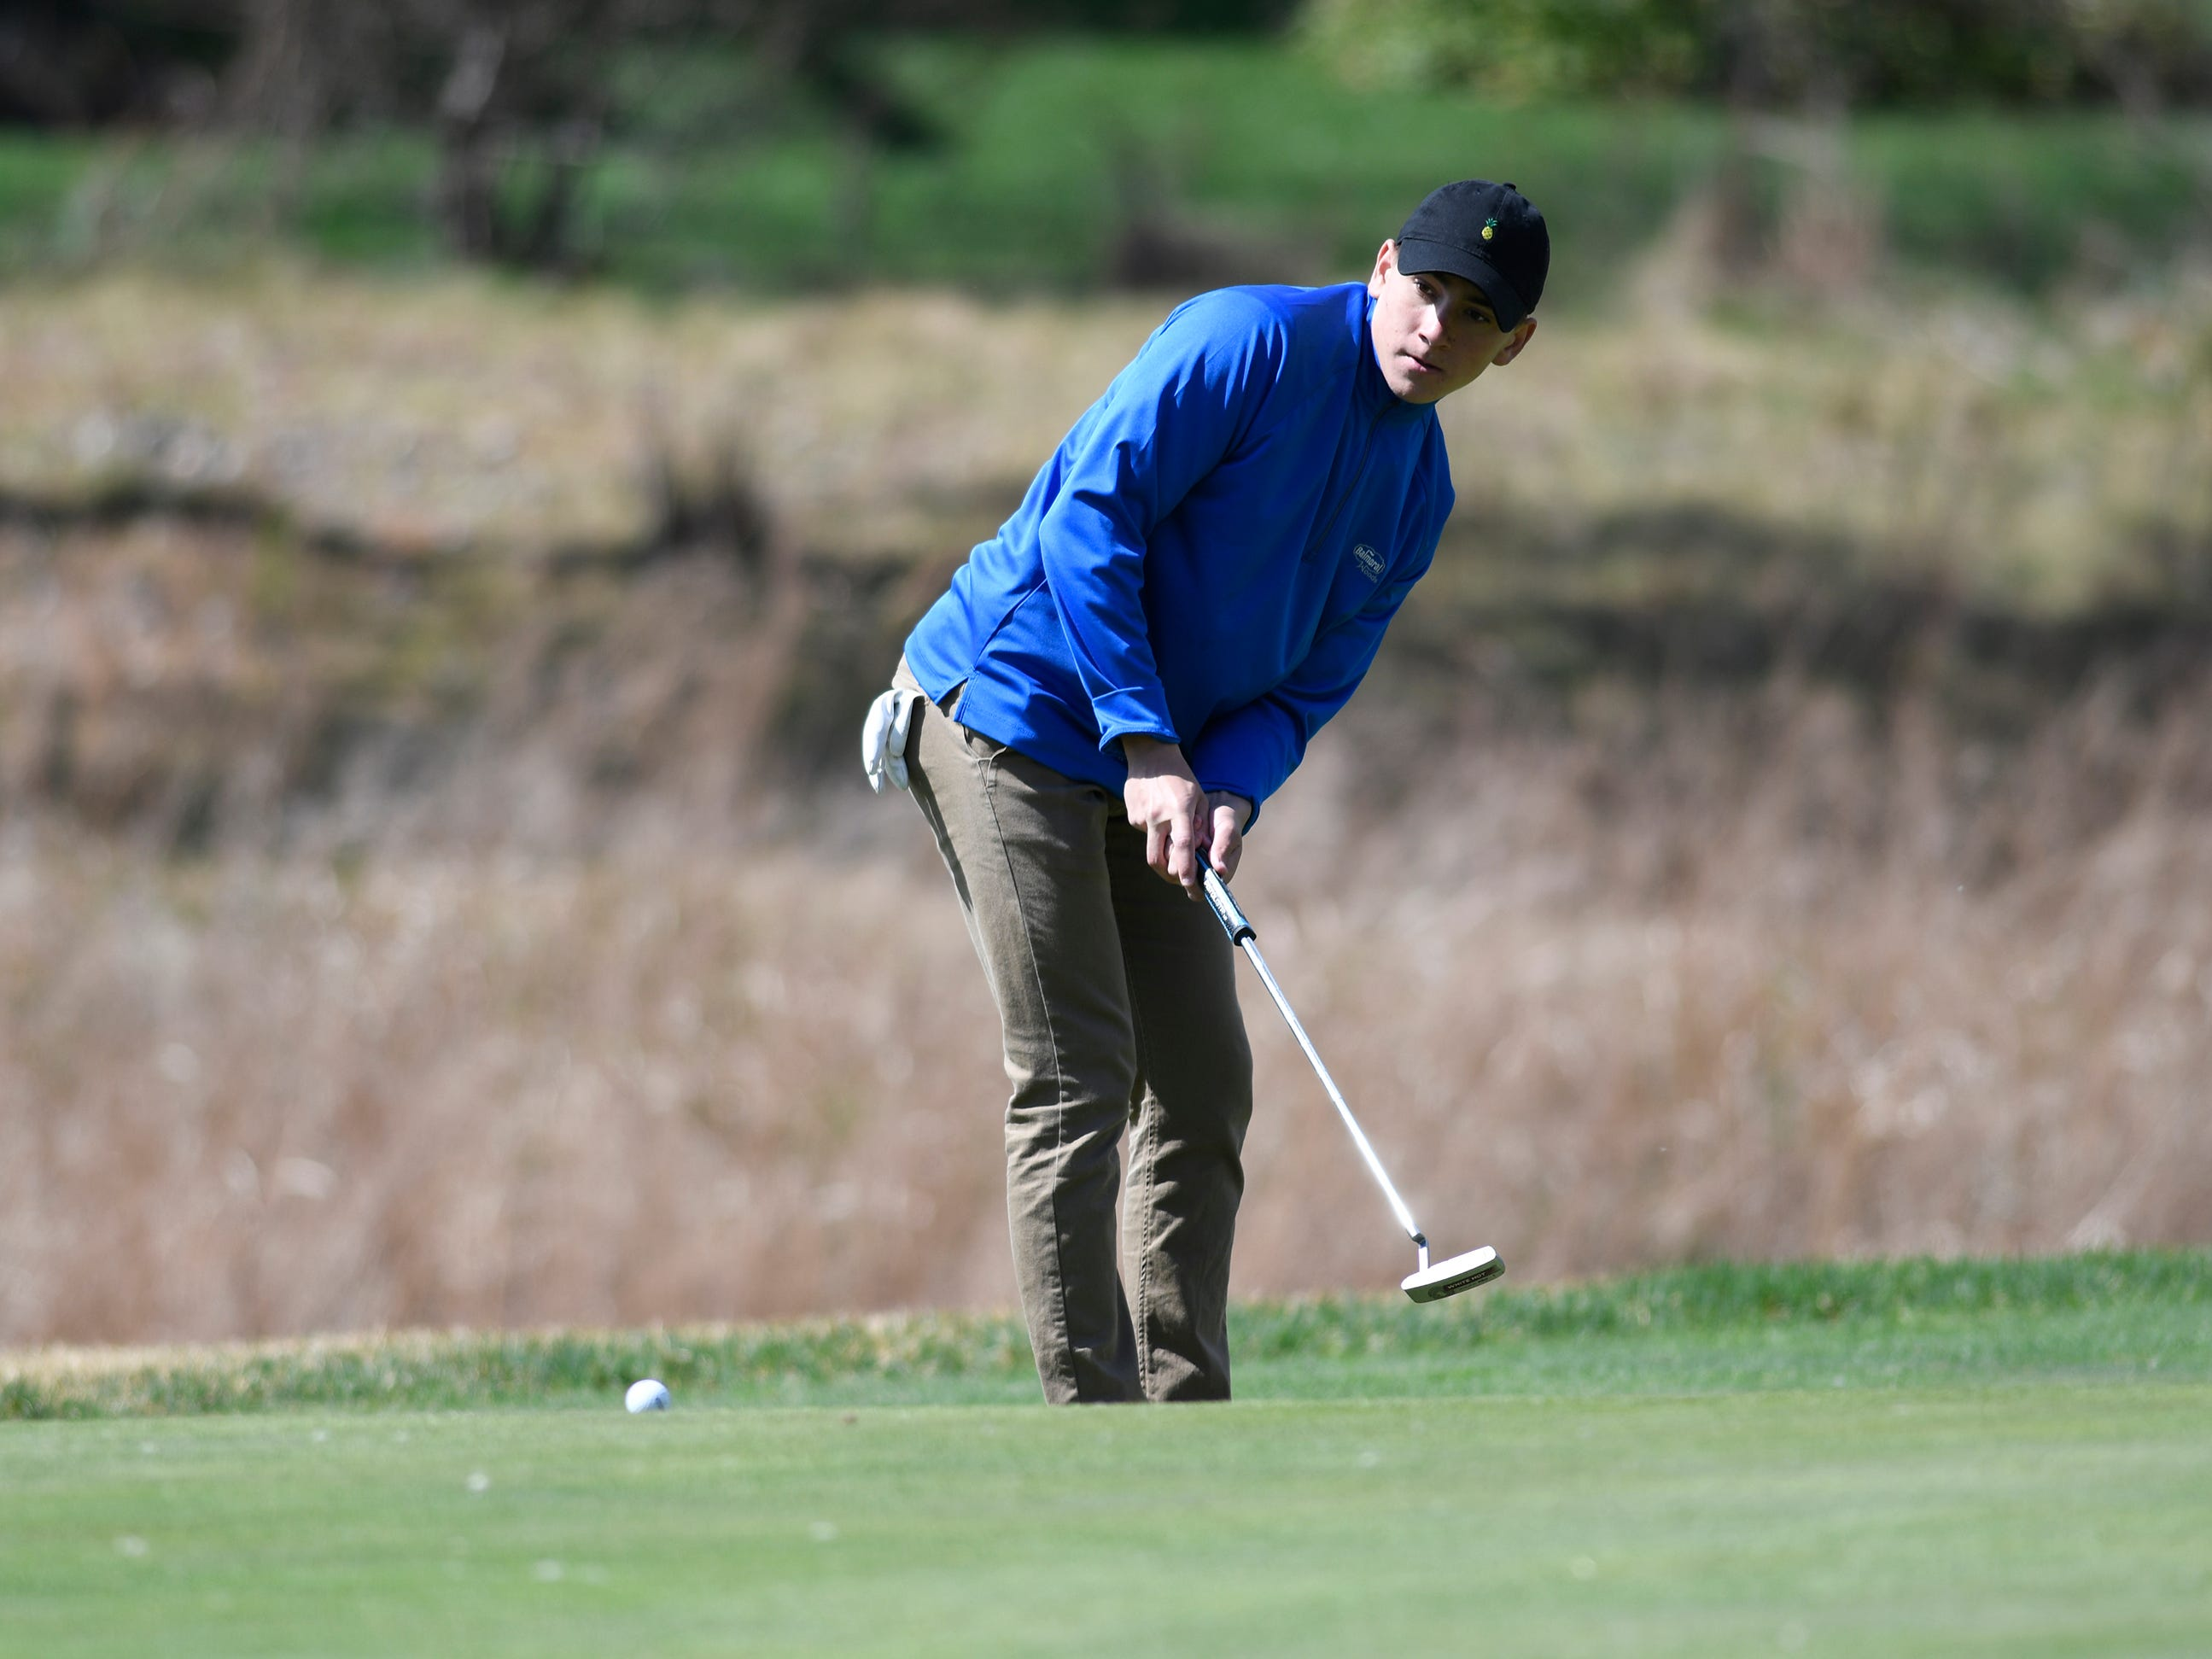 Evan Velasquez of Brick Memorial competes at the Ocean County Tournament on April 15, 2019,  at Sea Oaks in Little Egg Harbor. Toms River North's Connor Bekefi emerged as the individual champion with a 3-over-par 75, four shots better than teammate Leo Kane. Toms River North successfully defended its team title, posting a total of 336, which was 18 shots better than Southern. Brick Memorial finished third.